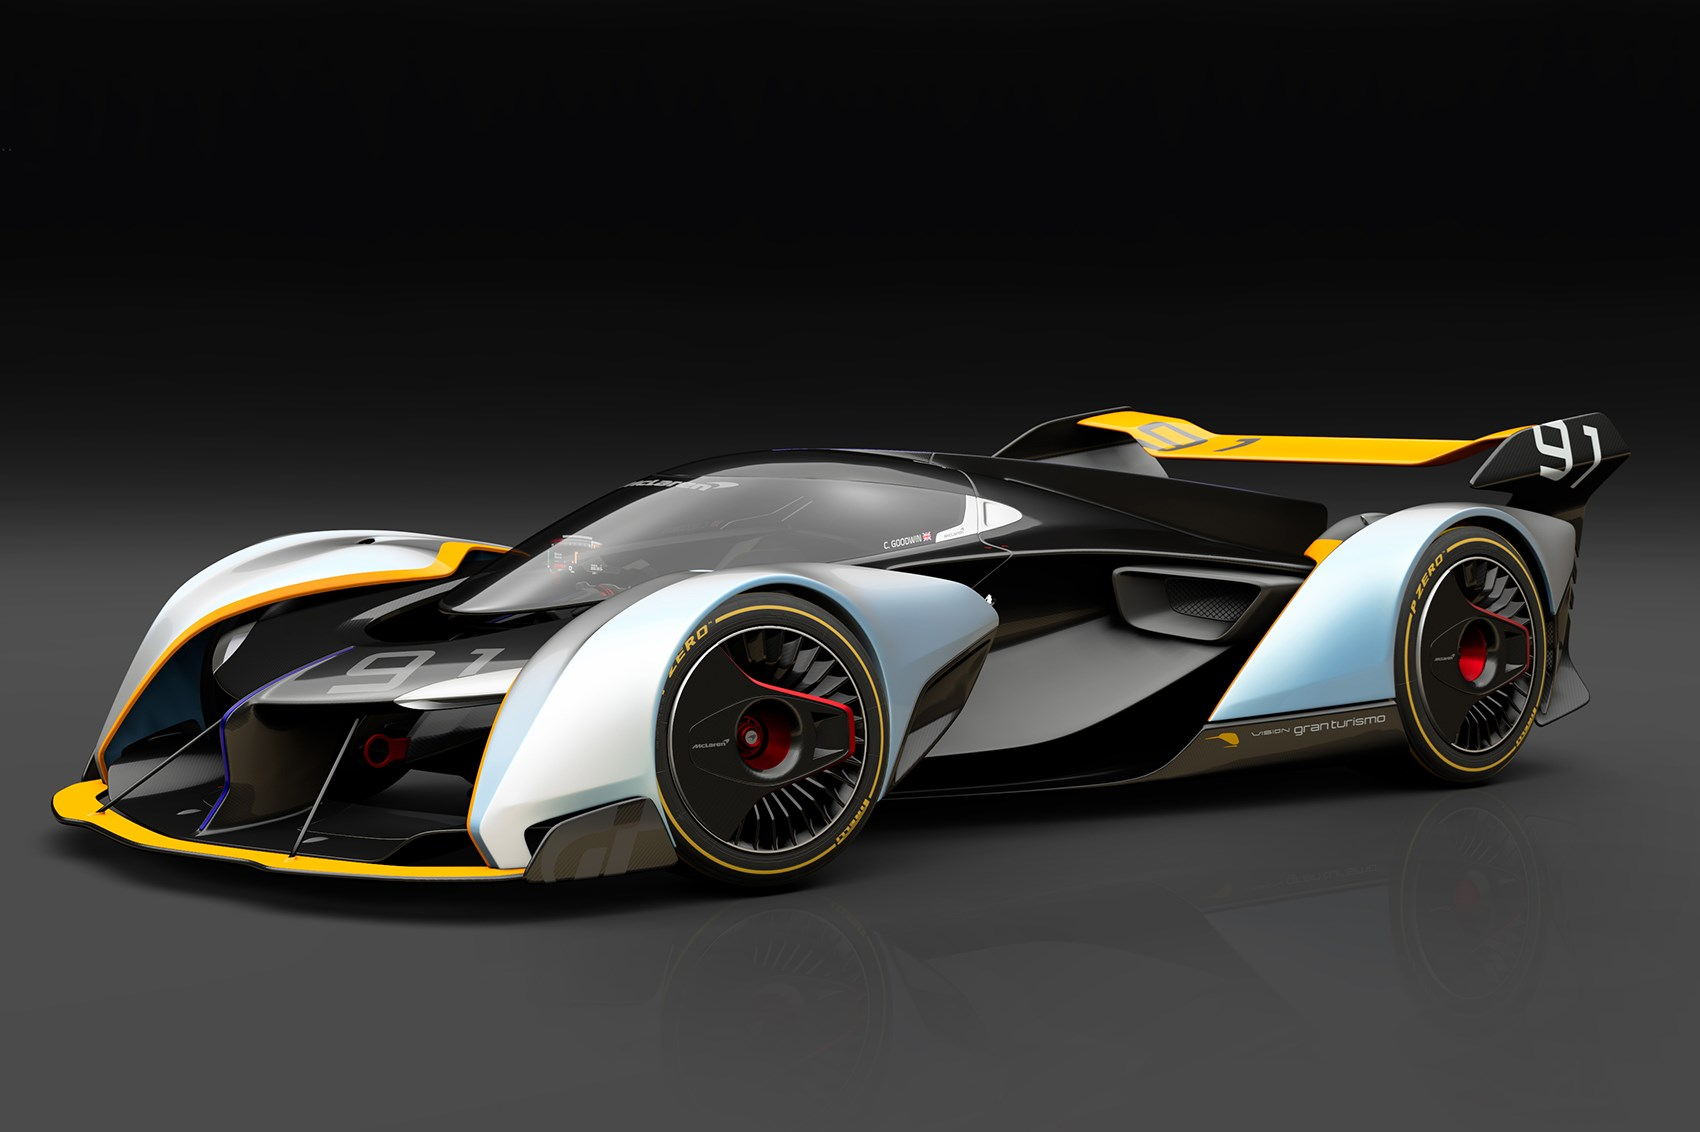 mclaren ultimate vision gran turismo concept 2017 for